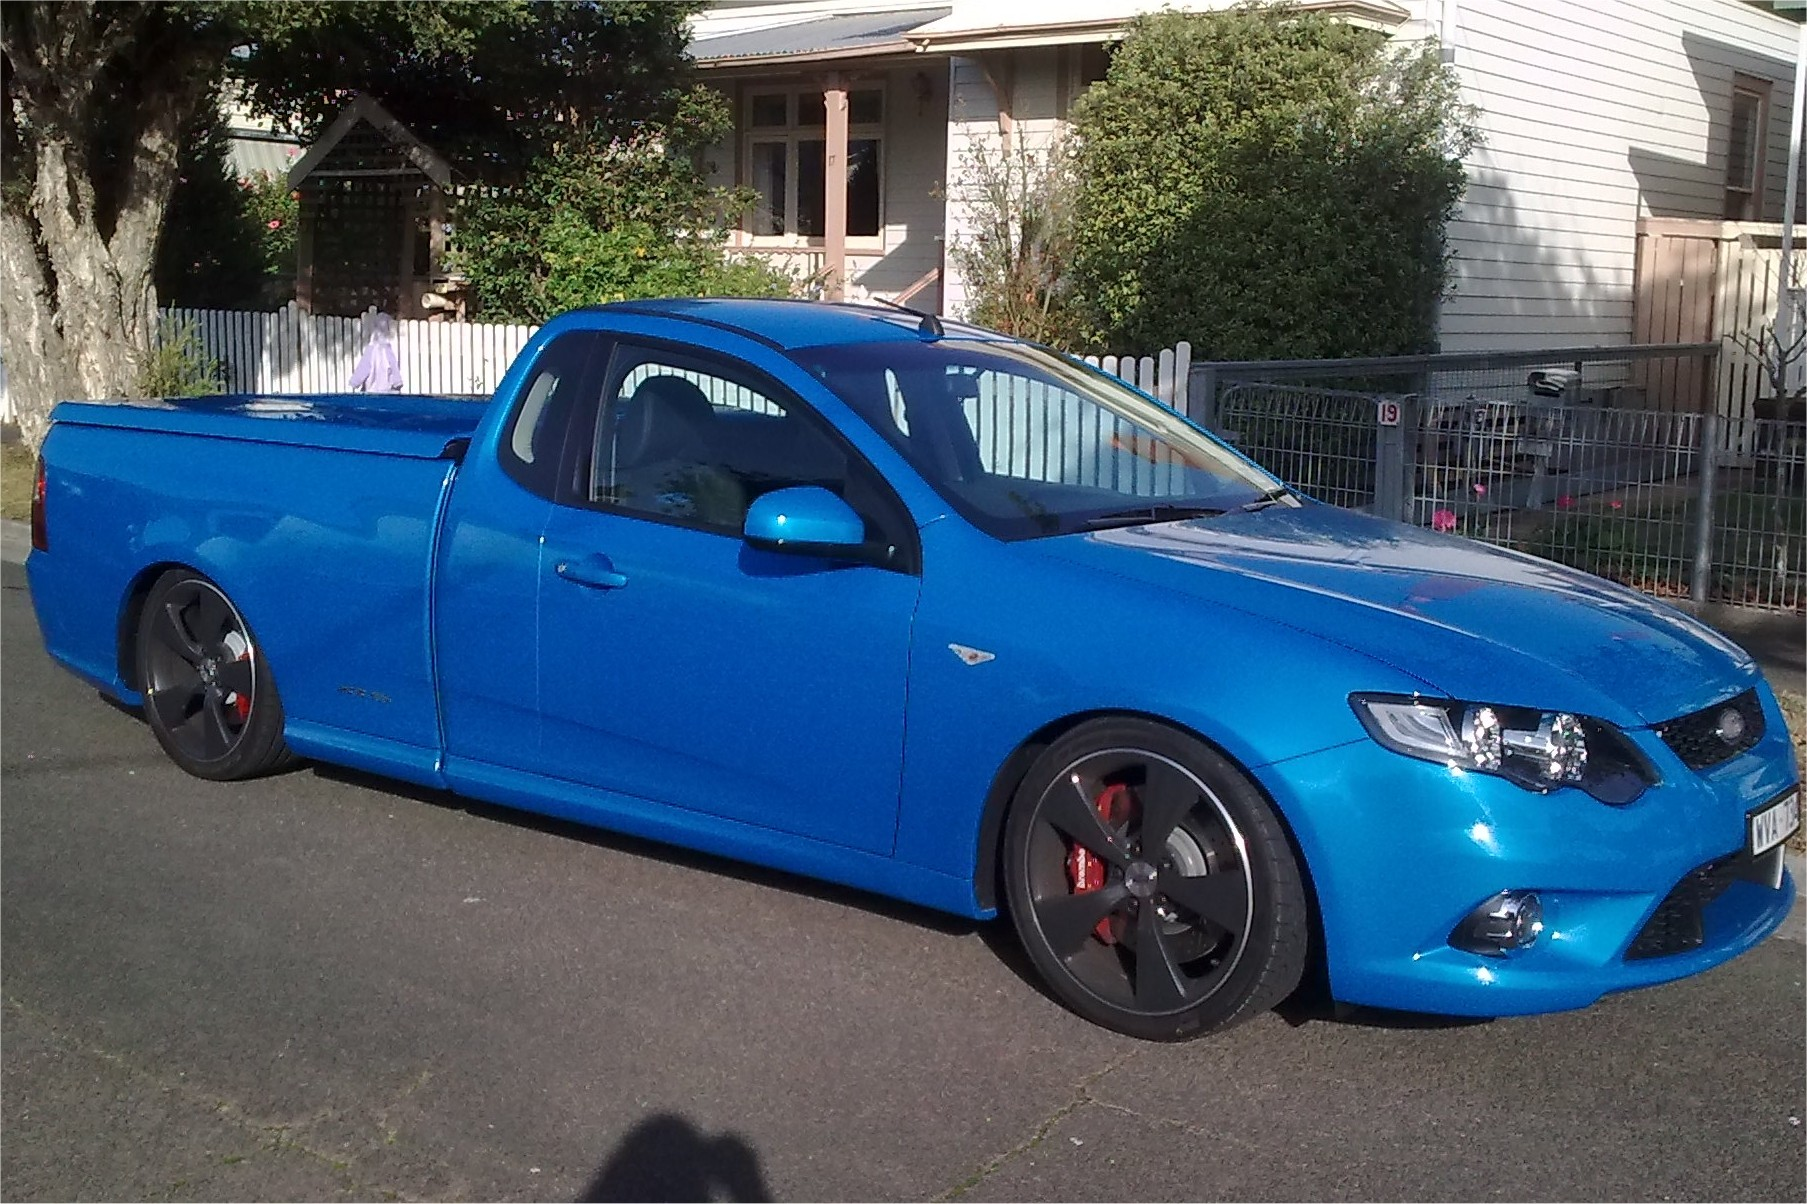 Ford Falcon XR6 Turbo Ute FG:picture # 1 , reviews, news